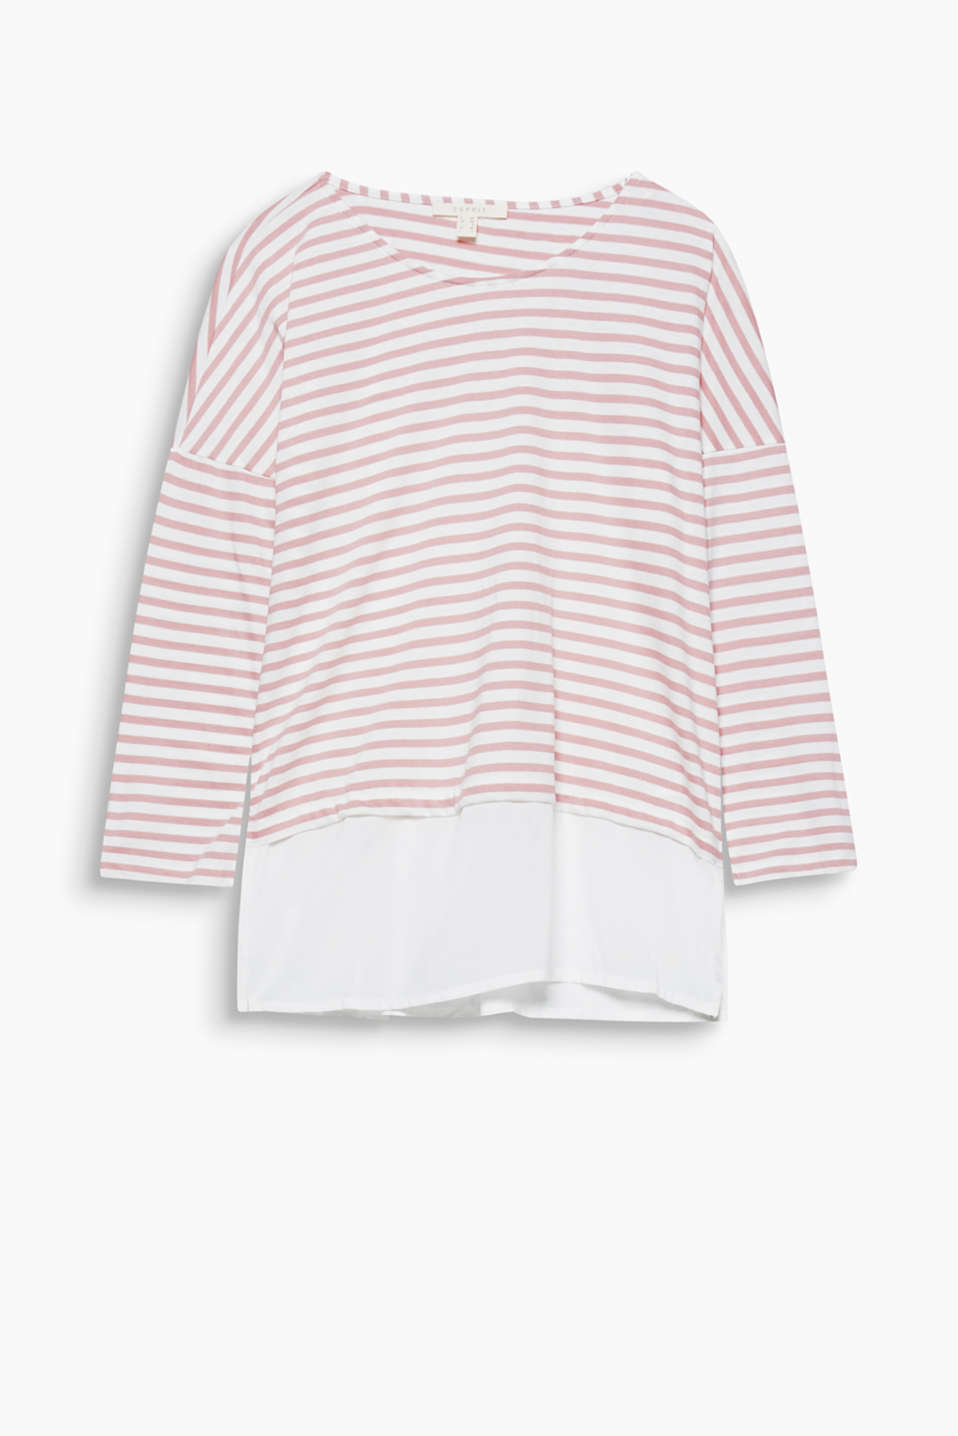 Everyday fave with a twist! T-shirt made of striped jersey combined with plain fabric